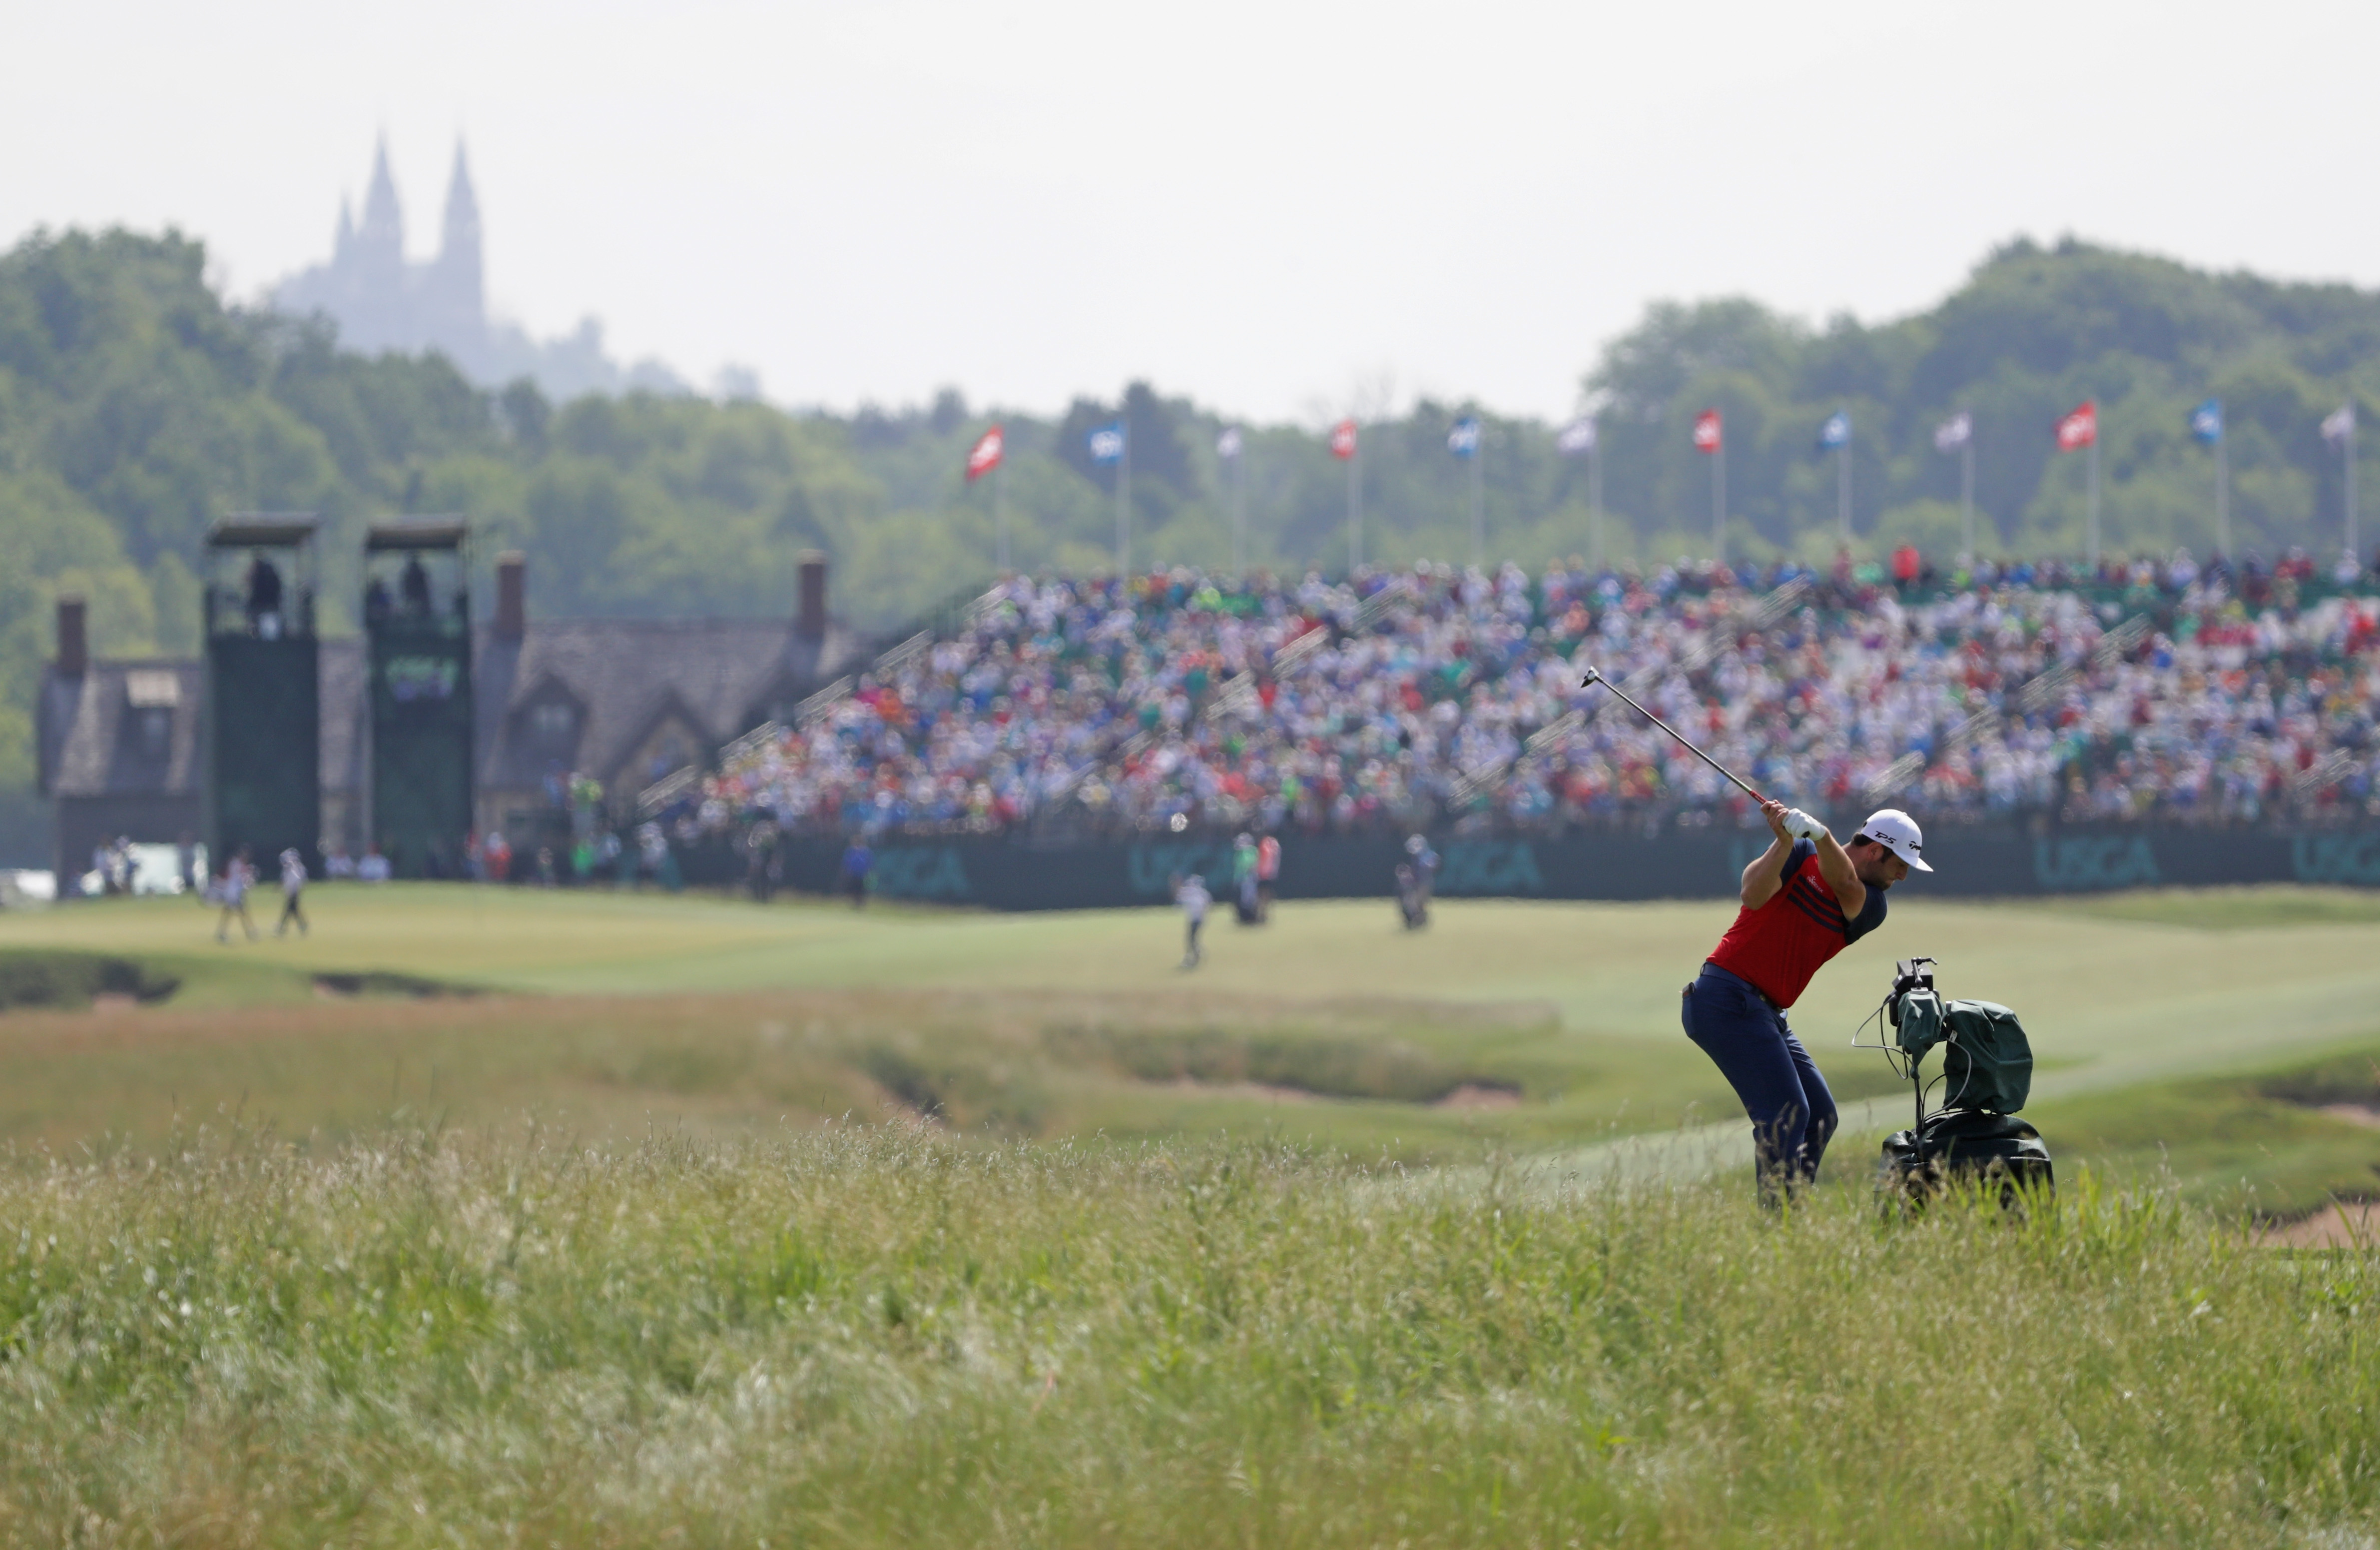 Jon Rahm of Spain plays his shot on the 18th hole during the first round of the 2017 U.S. Open at Erin Hills on June 15, 2017 in Hartford, Wisconsin.